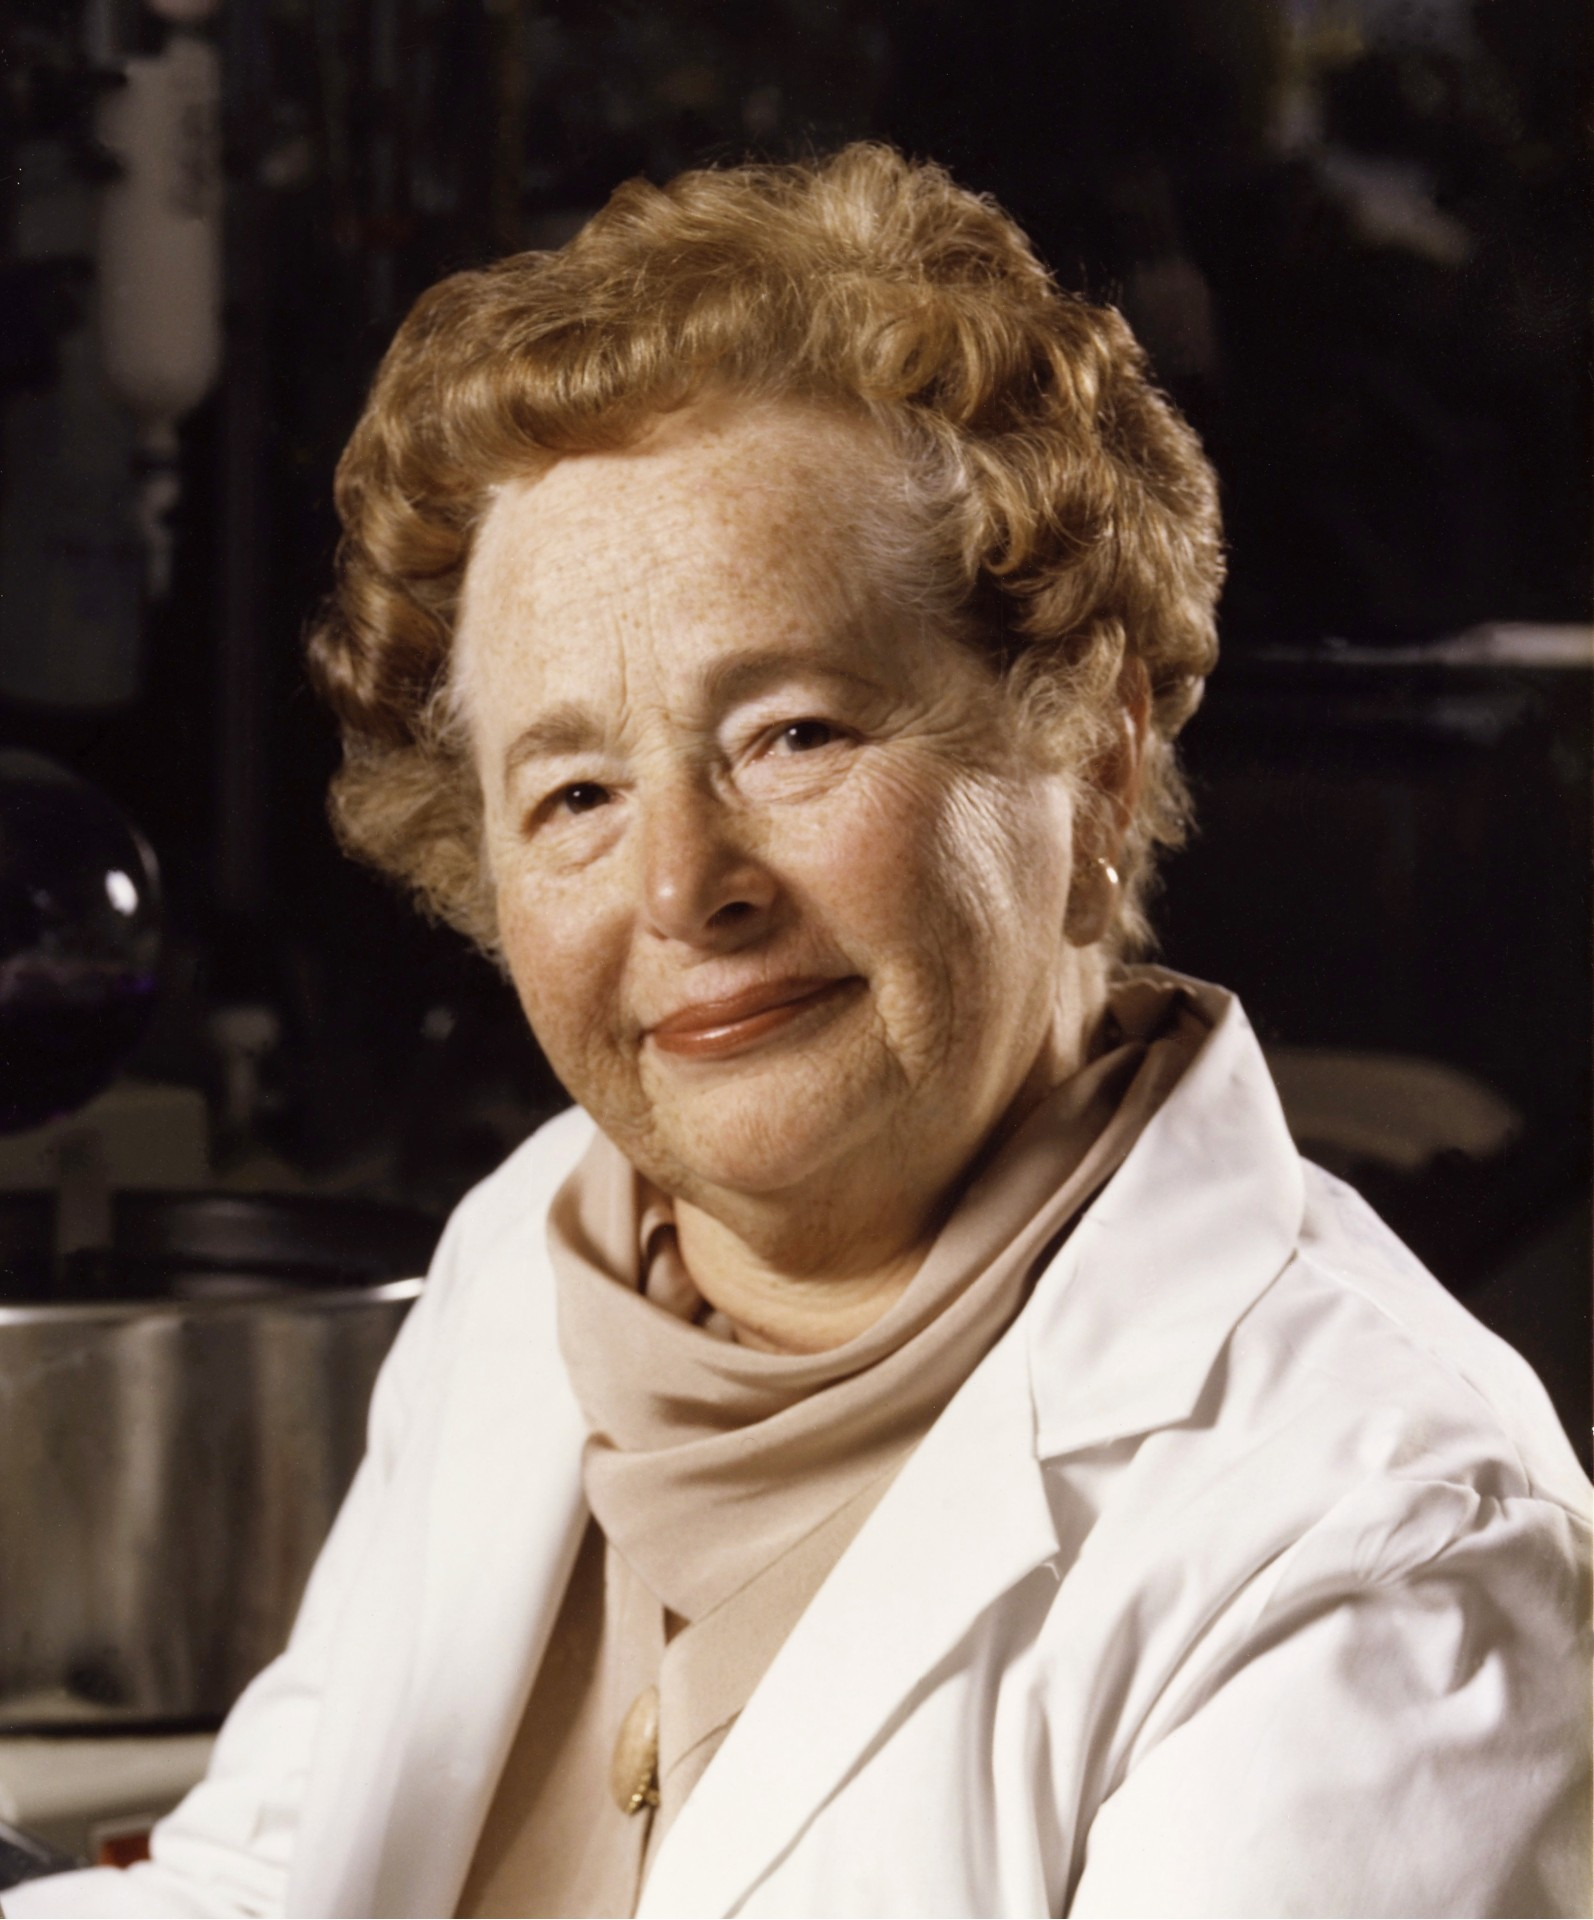 Older woman with short perm hair and white lab coat